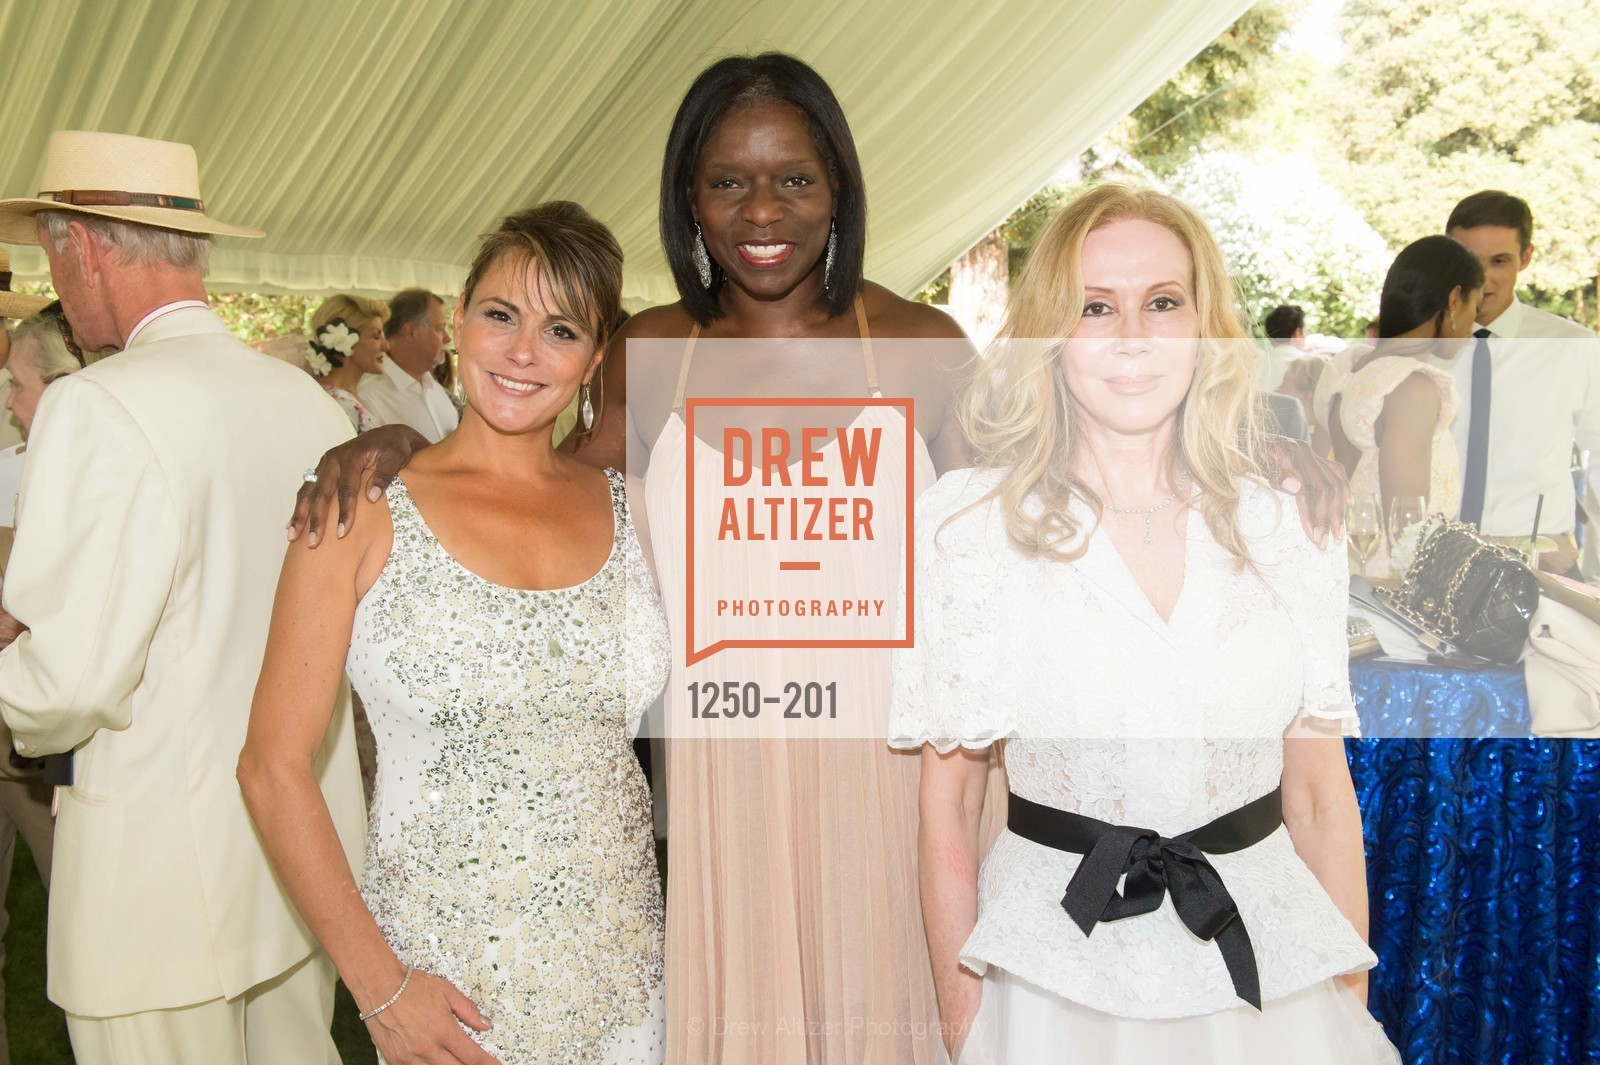 Teresa Rodriguez, Kelly Carter, Sophie Azouaou, Festival del Sole Annual Gala at Meadowood Napa Valley, Meadowood Napa Valley. 900 Meadowood Ln, July 19th, 2015,Drew Altizer, Drew Altizer Photography, full-service agency, private events, San Francisco photographer, photographer california